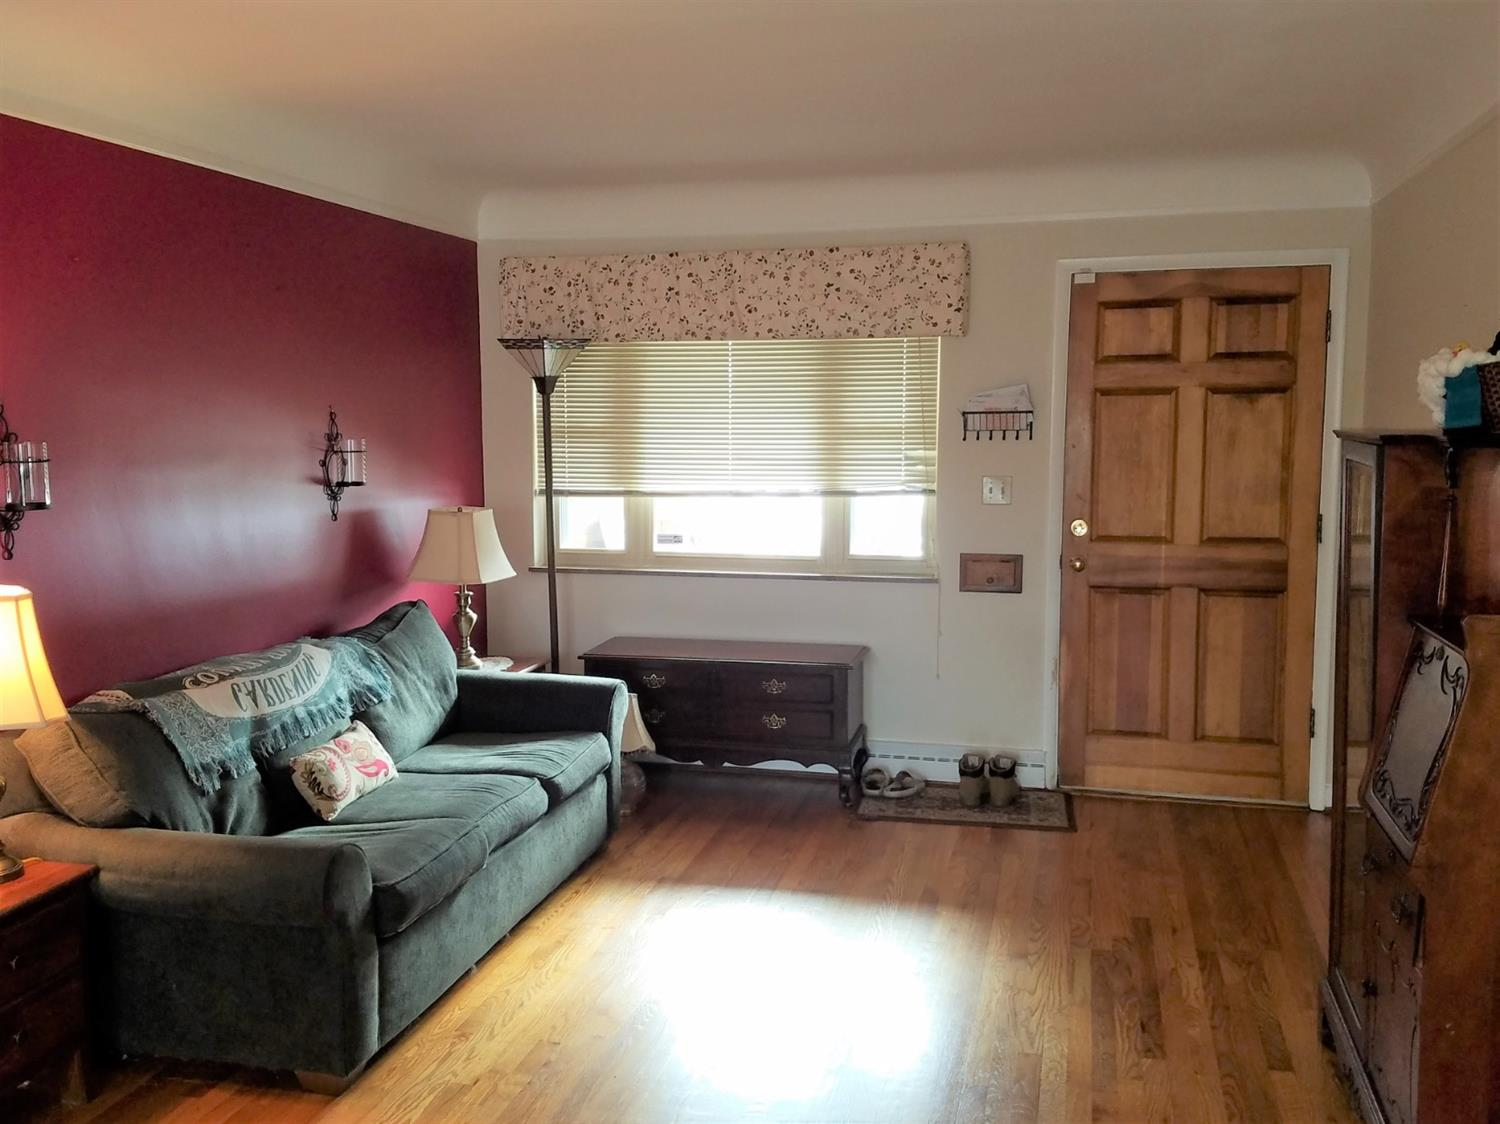 Photo 2 for 1771 Tuxworth Ave Covedale, OH 45238